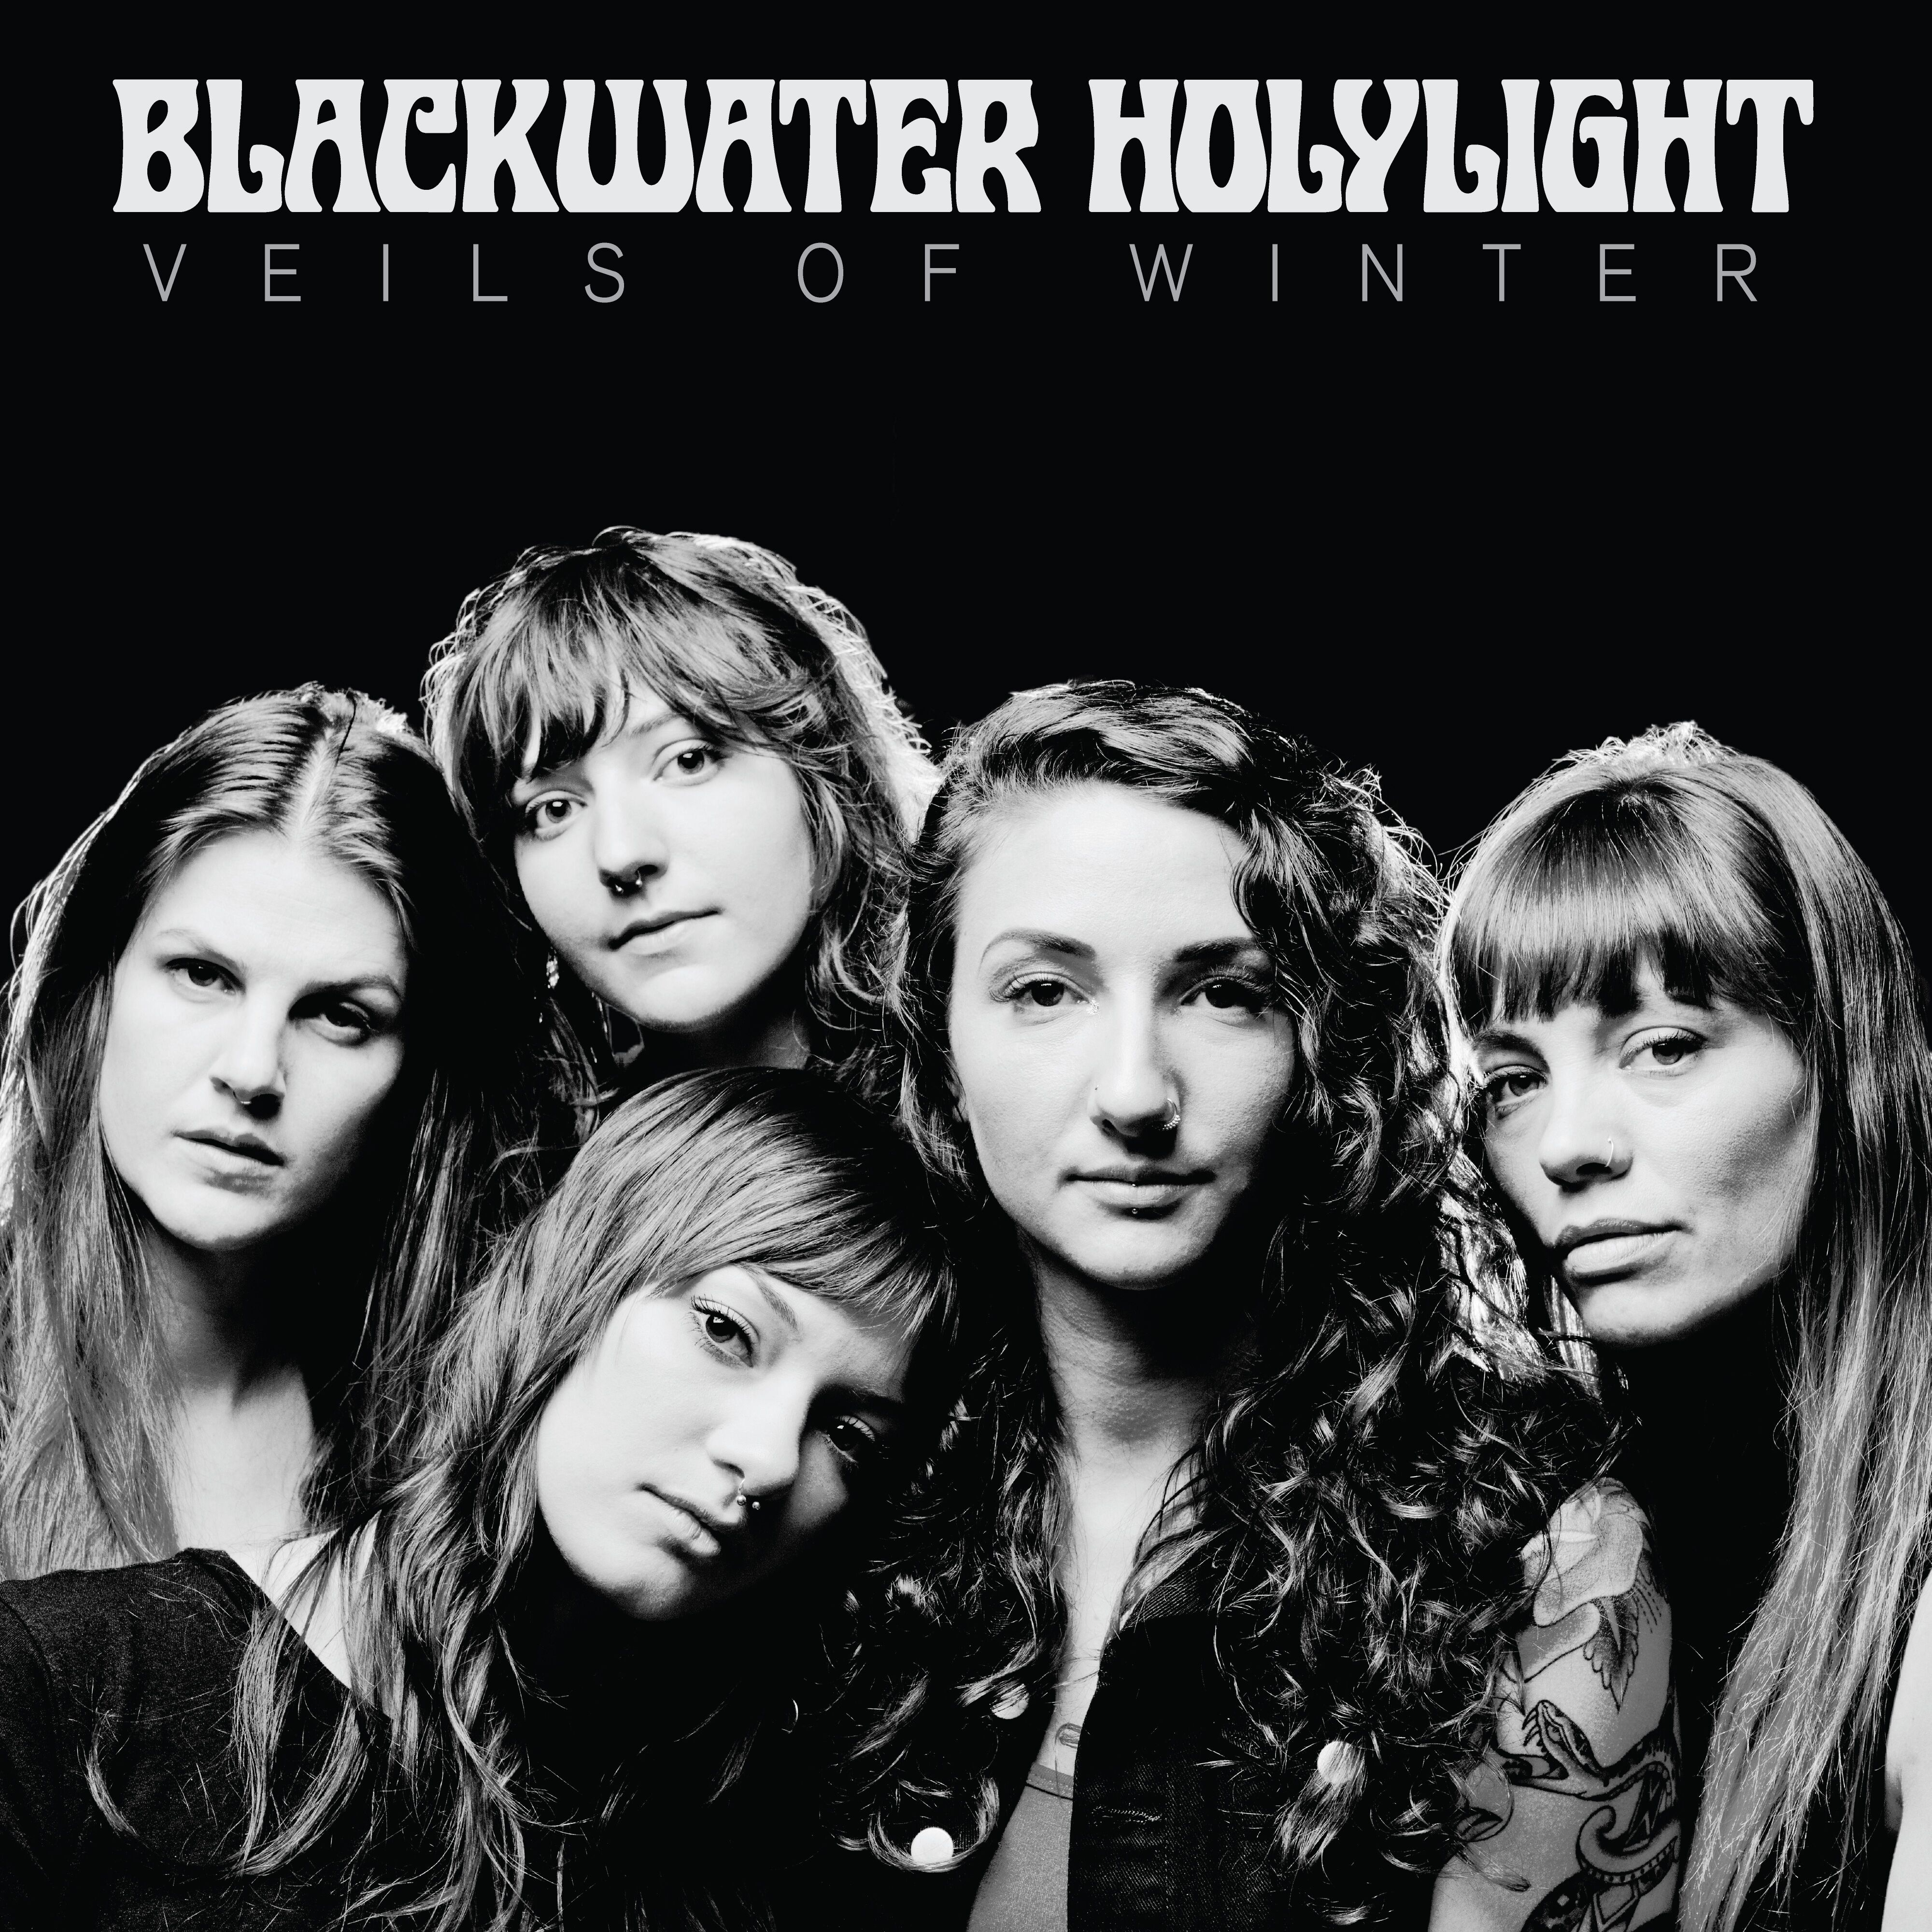 blackwater holylight veils of winter